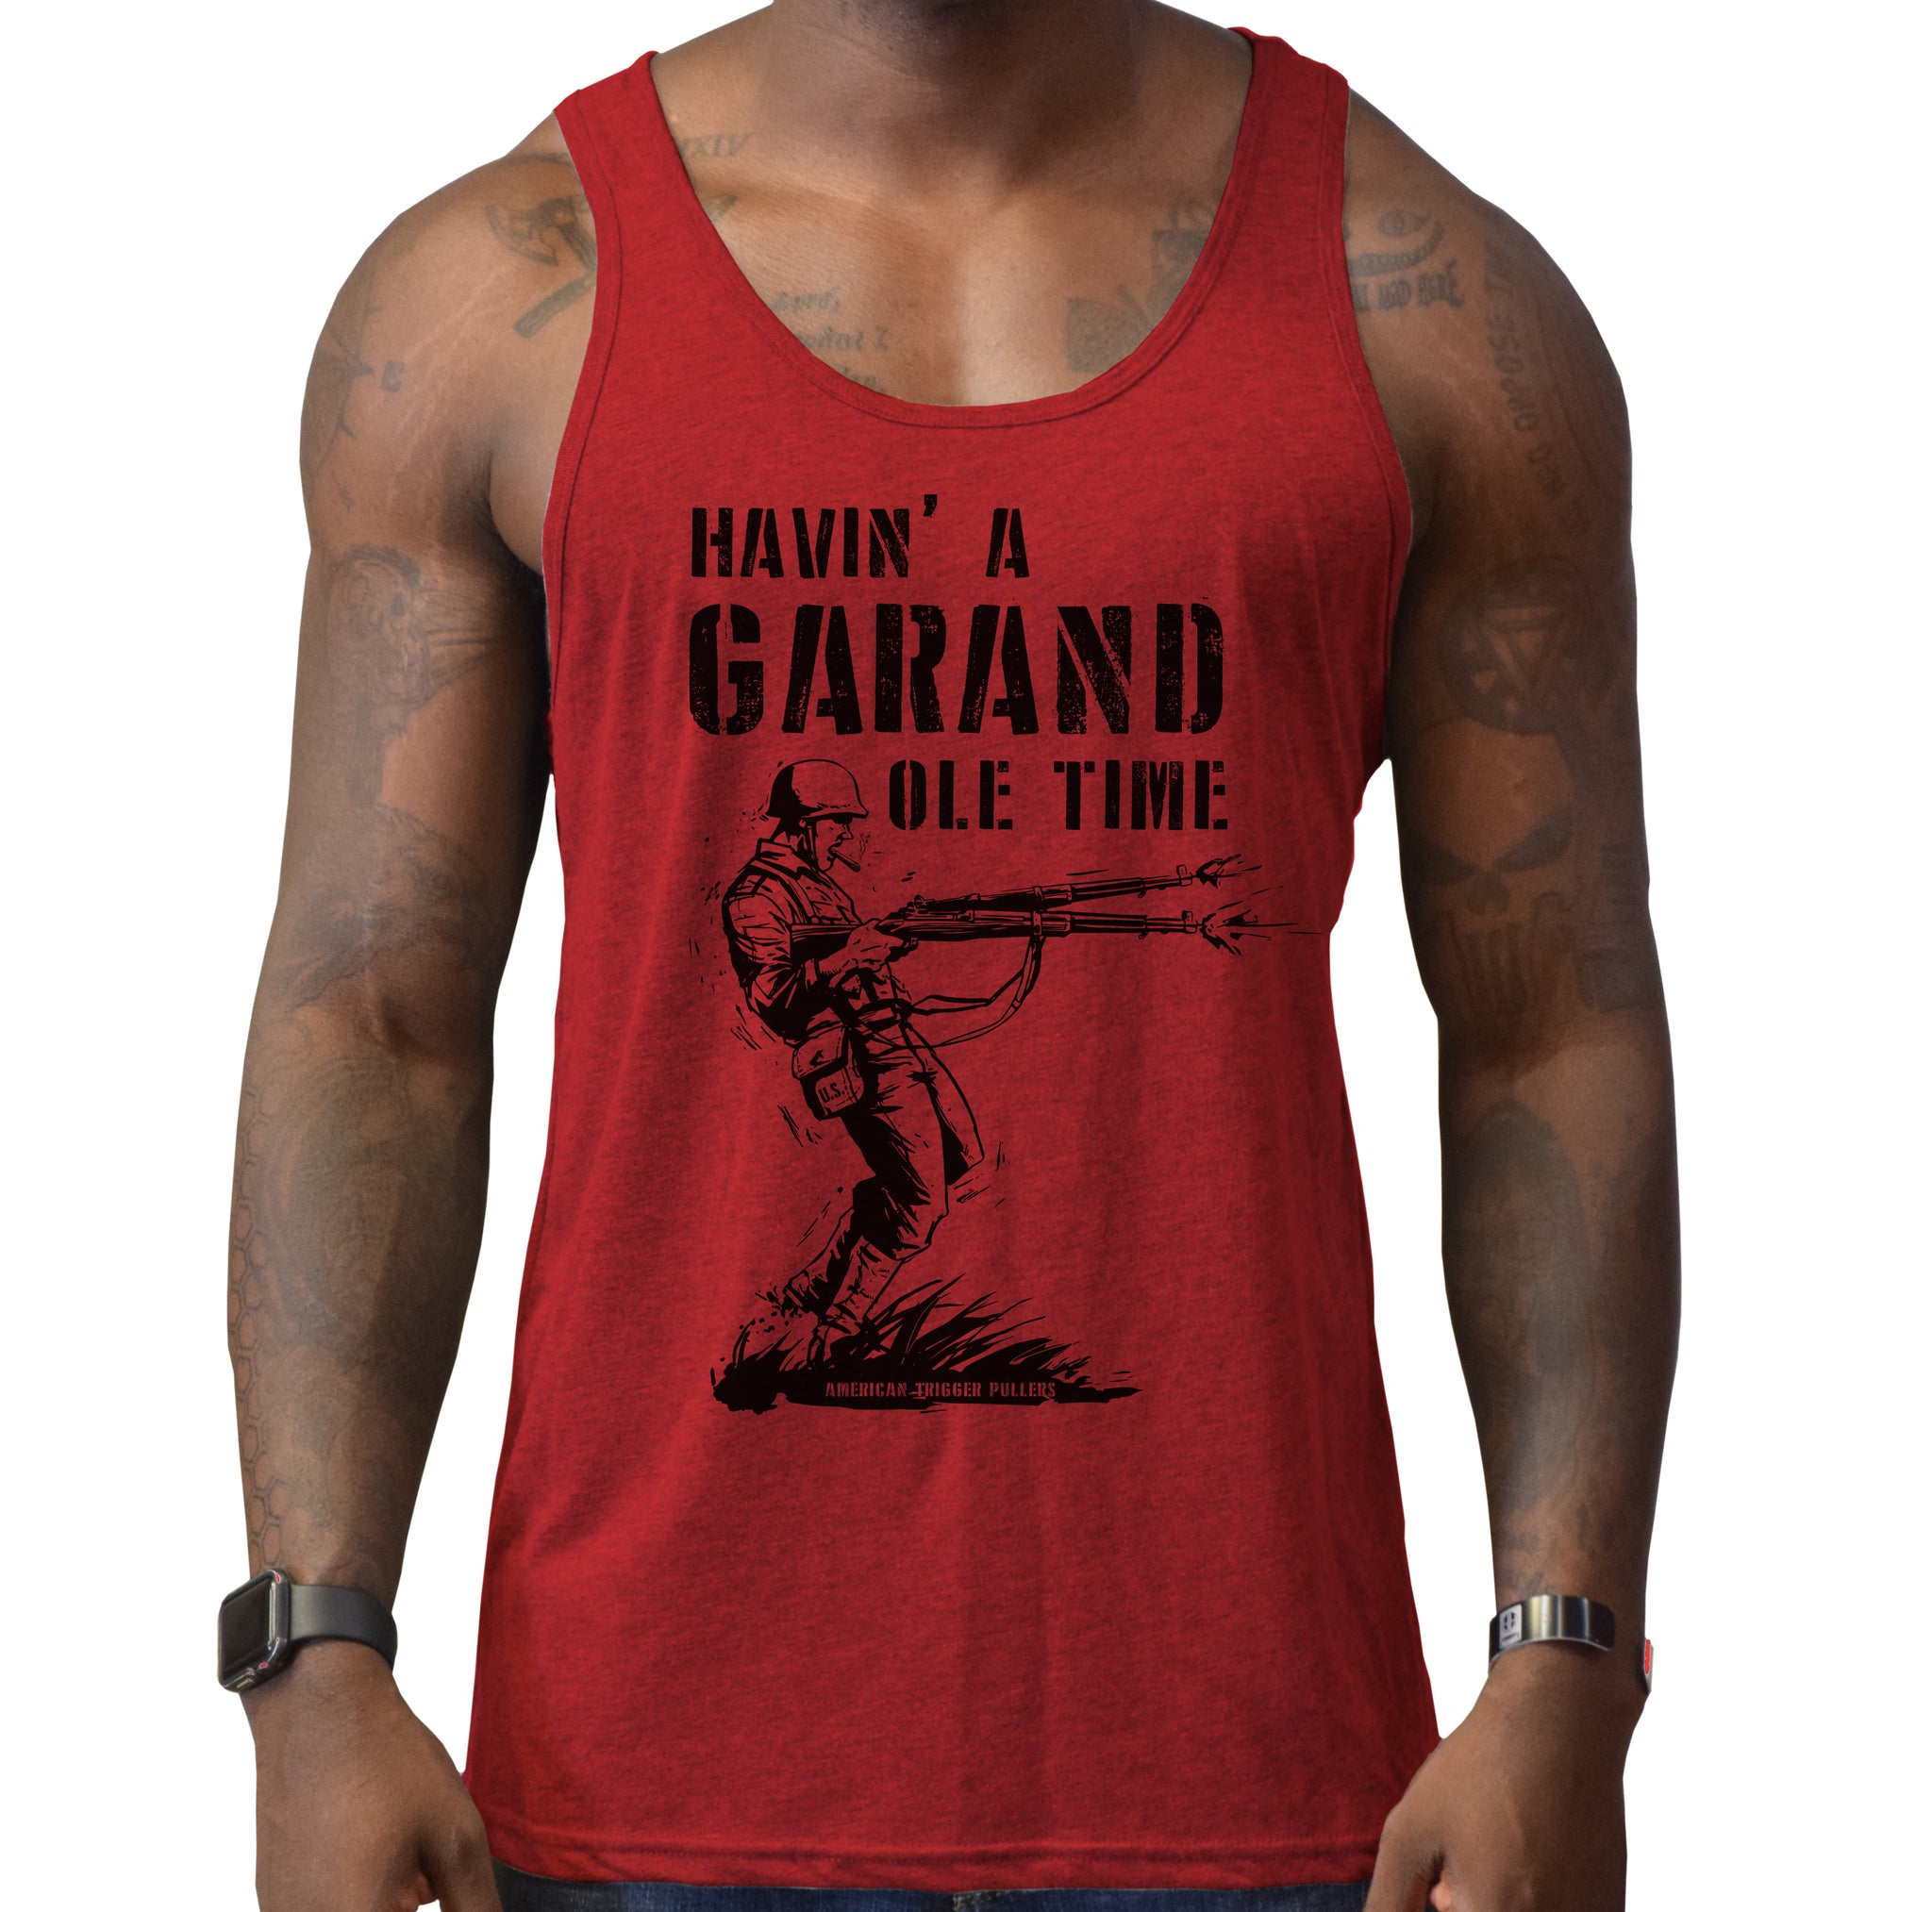 Havin' A Garand Ole Time Tank